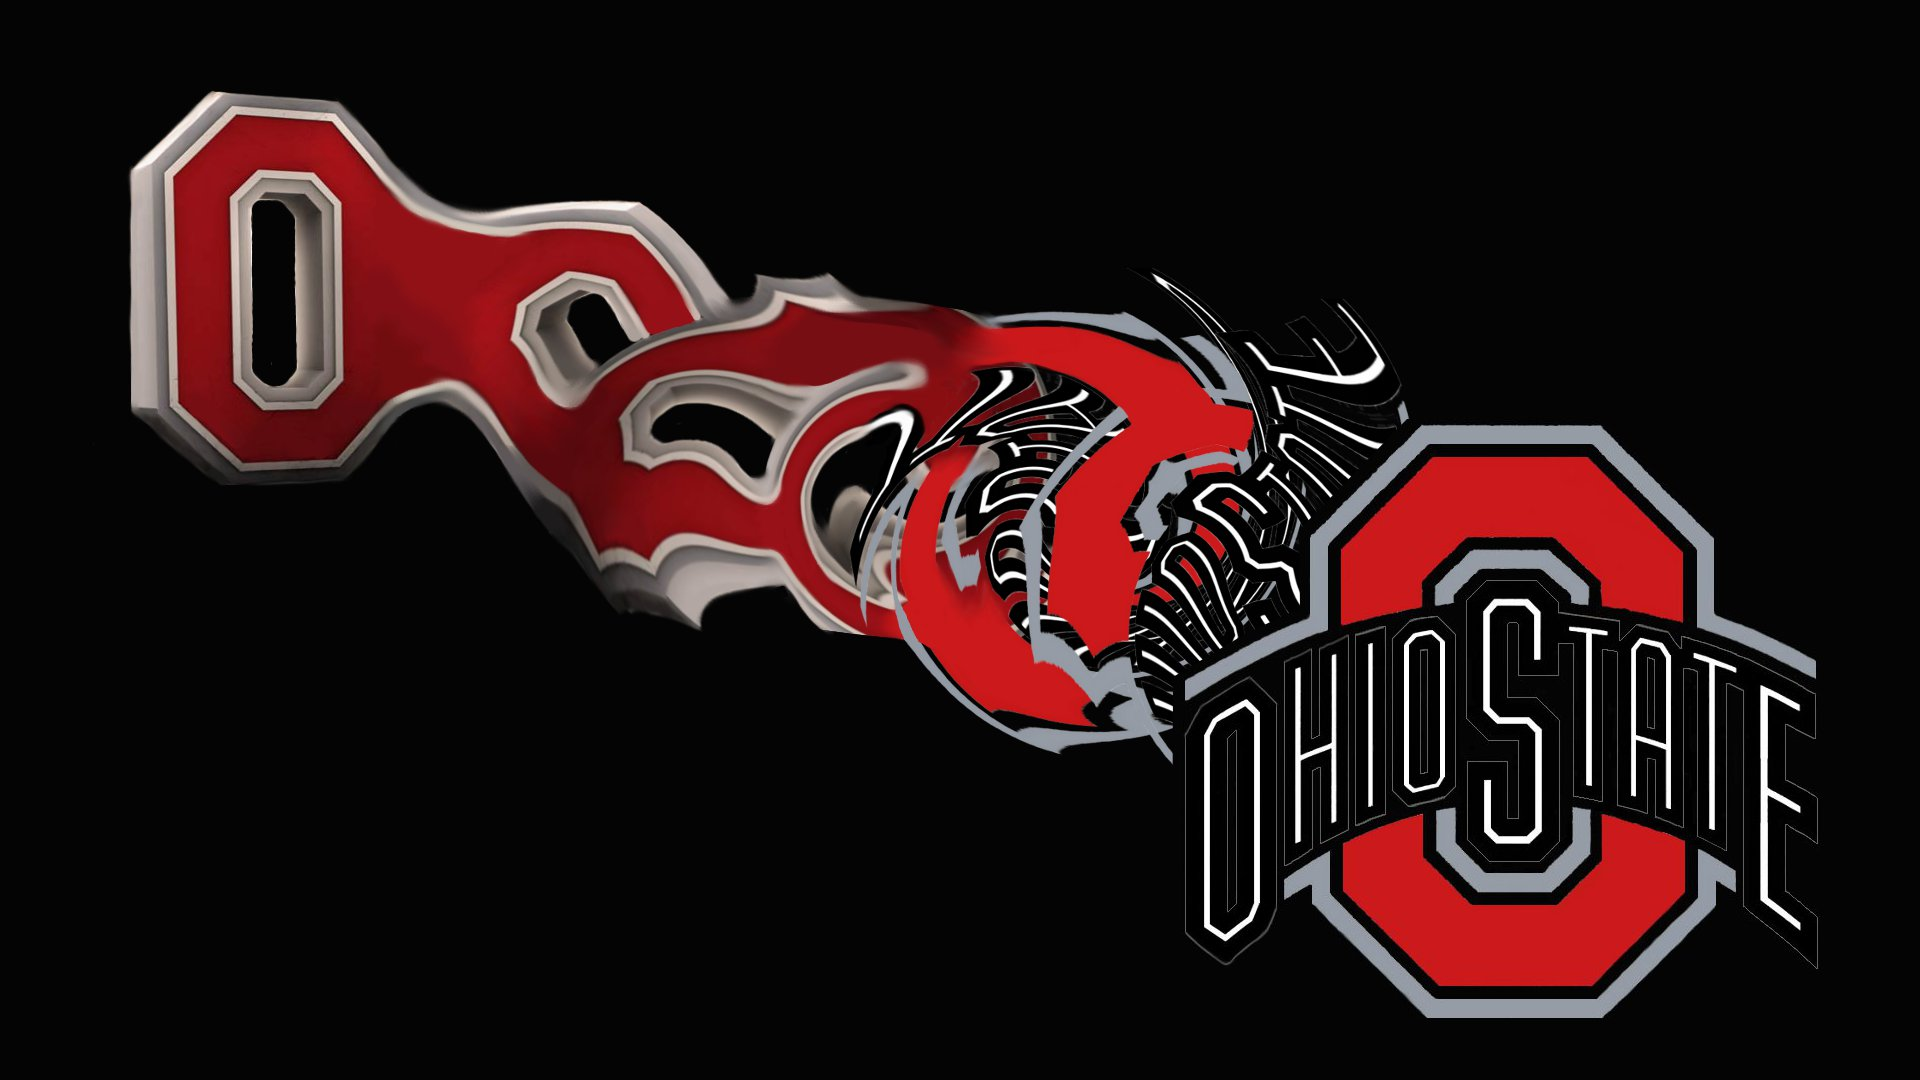 OSU Wallpaper 200   Ohio State Football Wallpaper 29037497 1920x1080